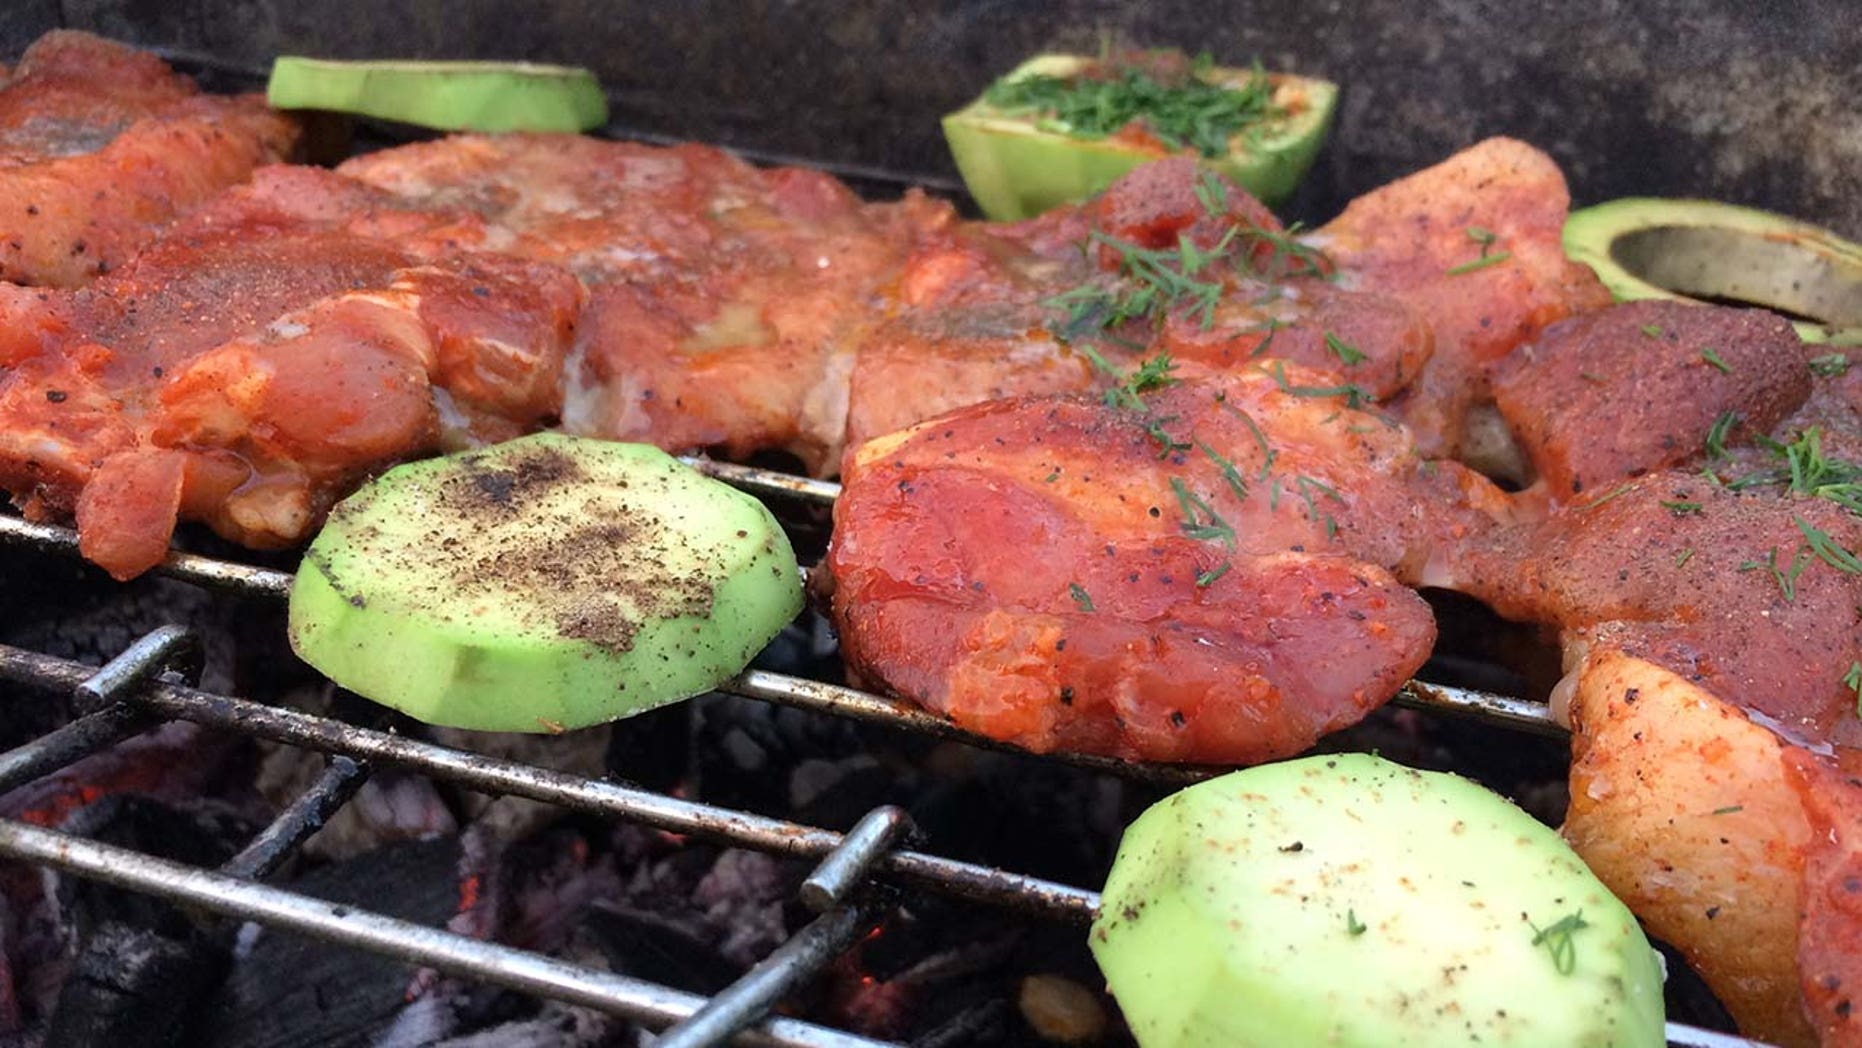 Your grill can deliver so much more beyond burgers and hot dogs.